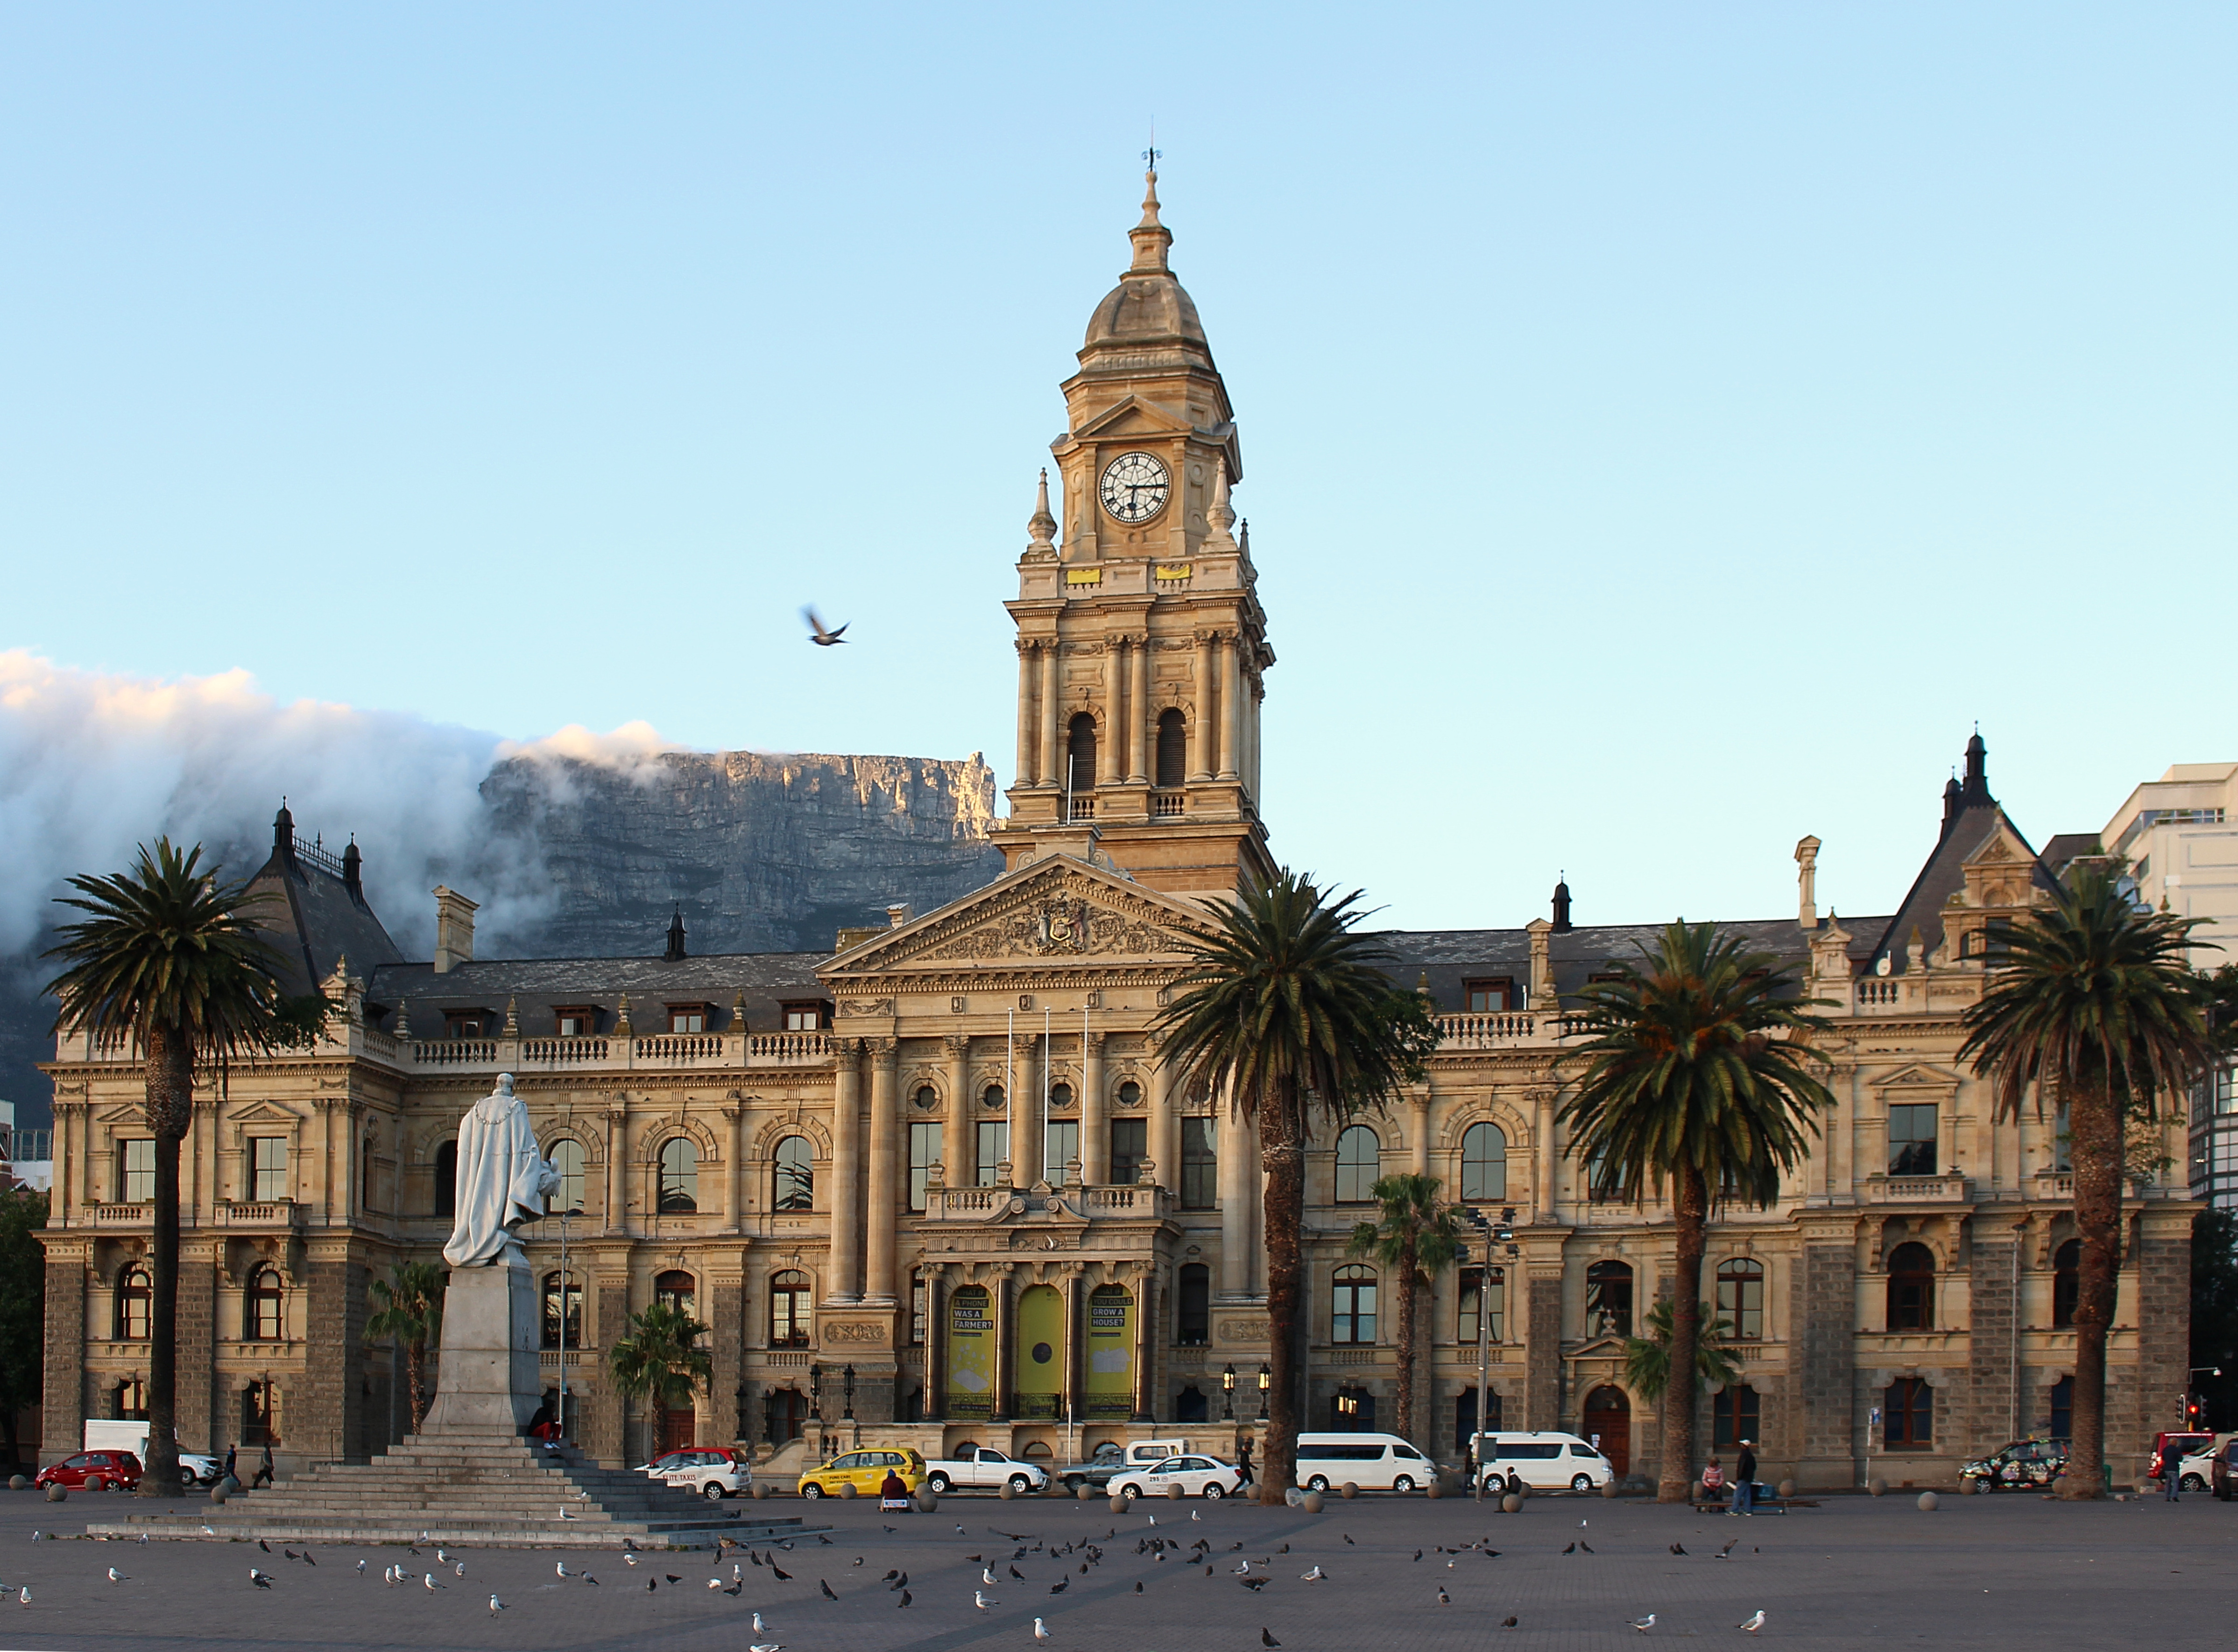 South Africa on a Budget: Top Free Attractions in Cape Town!